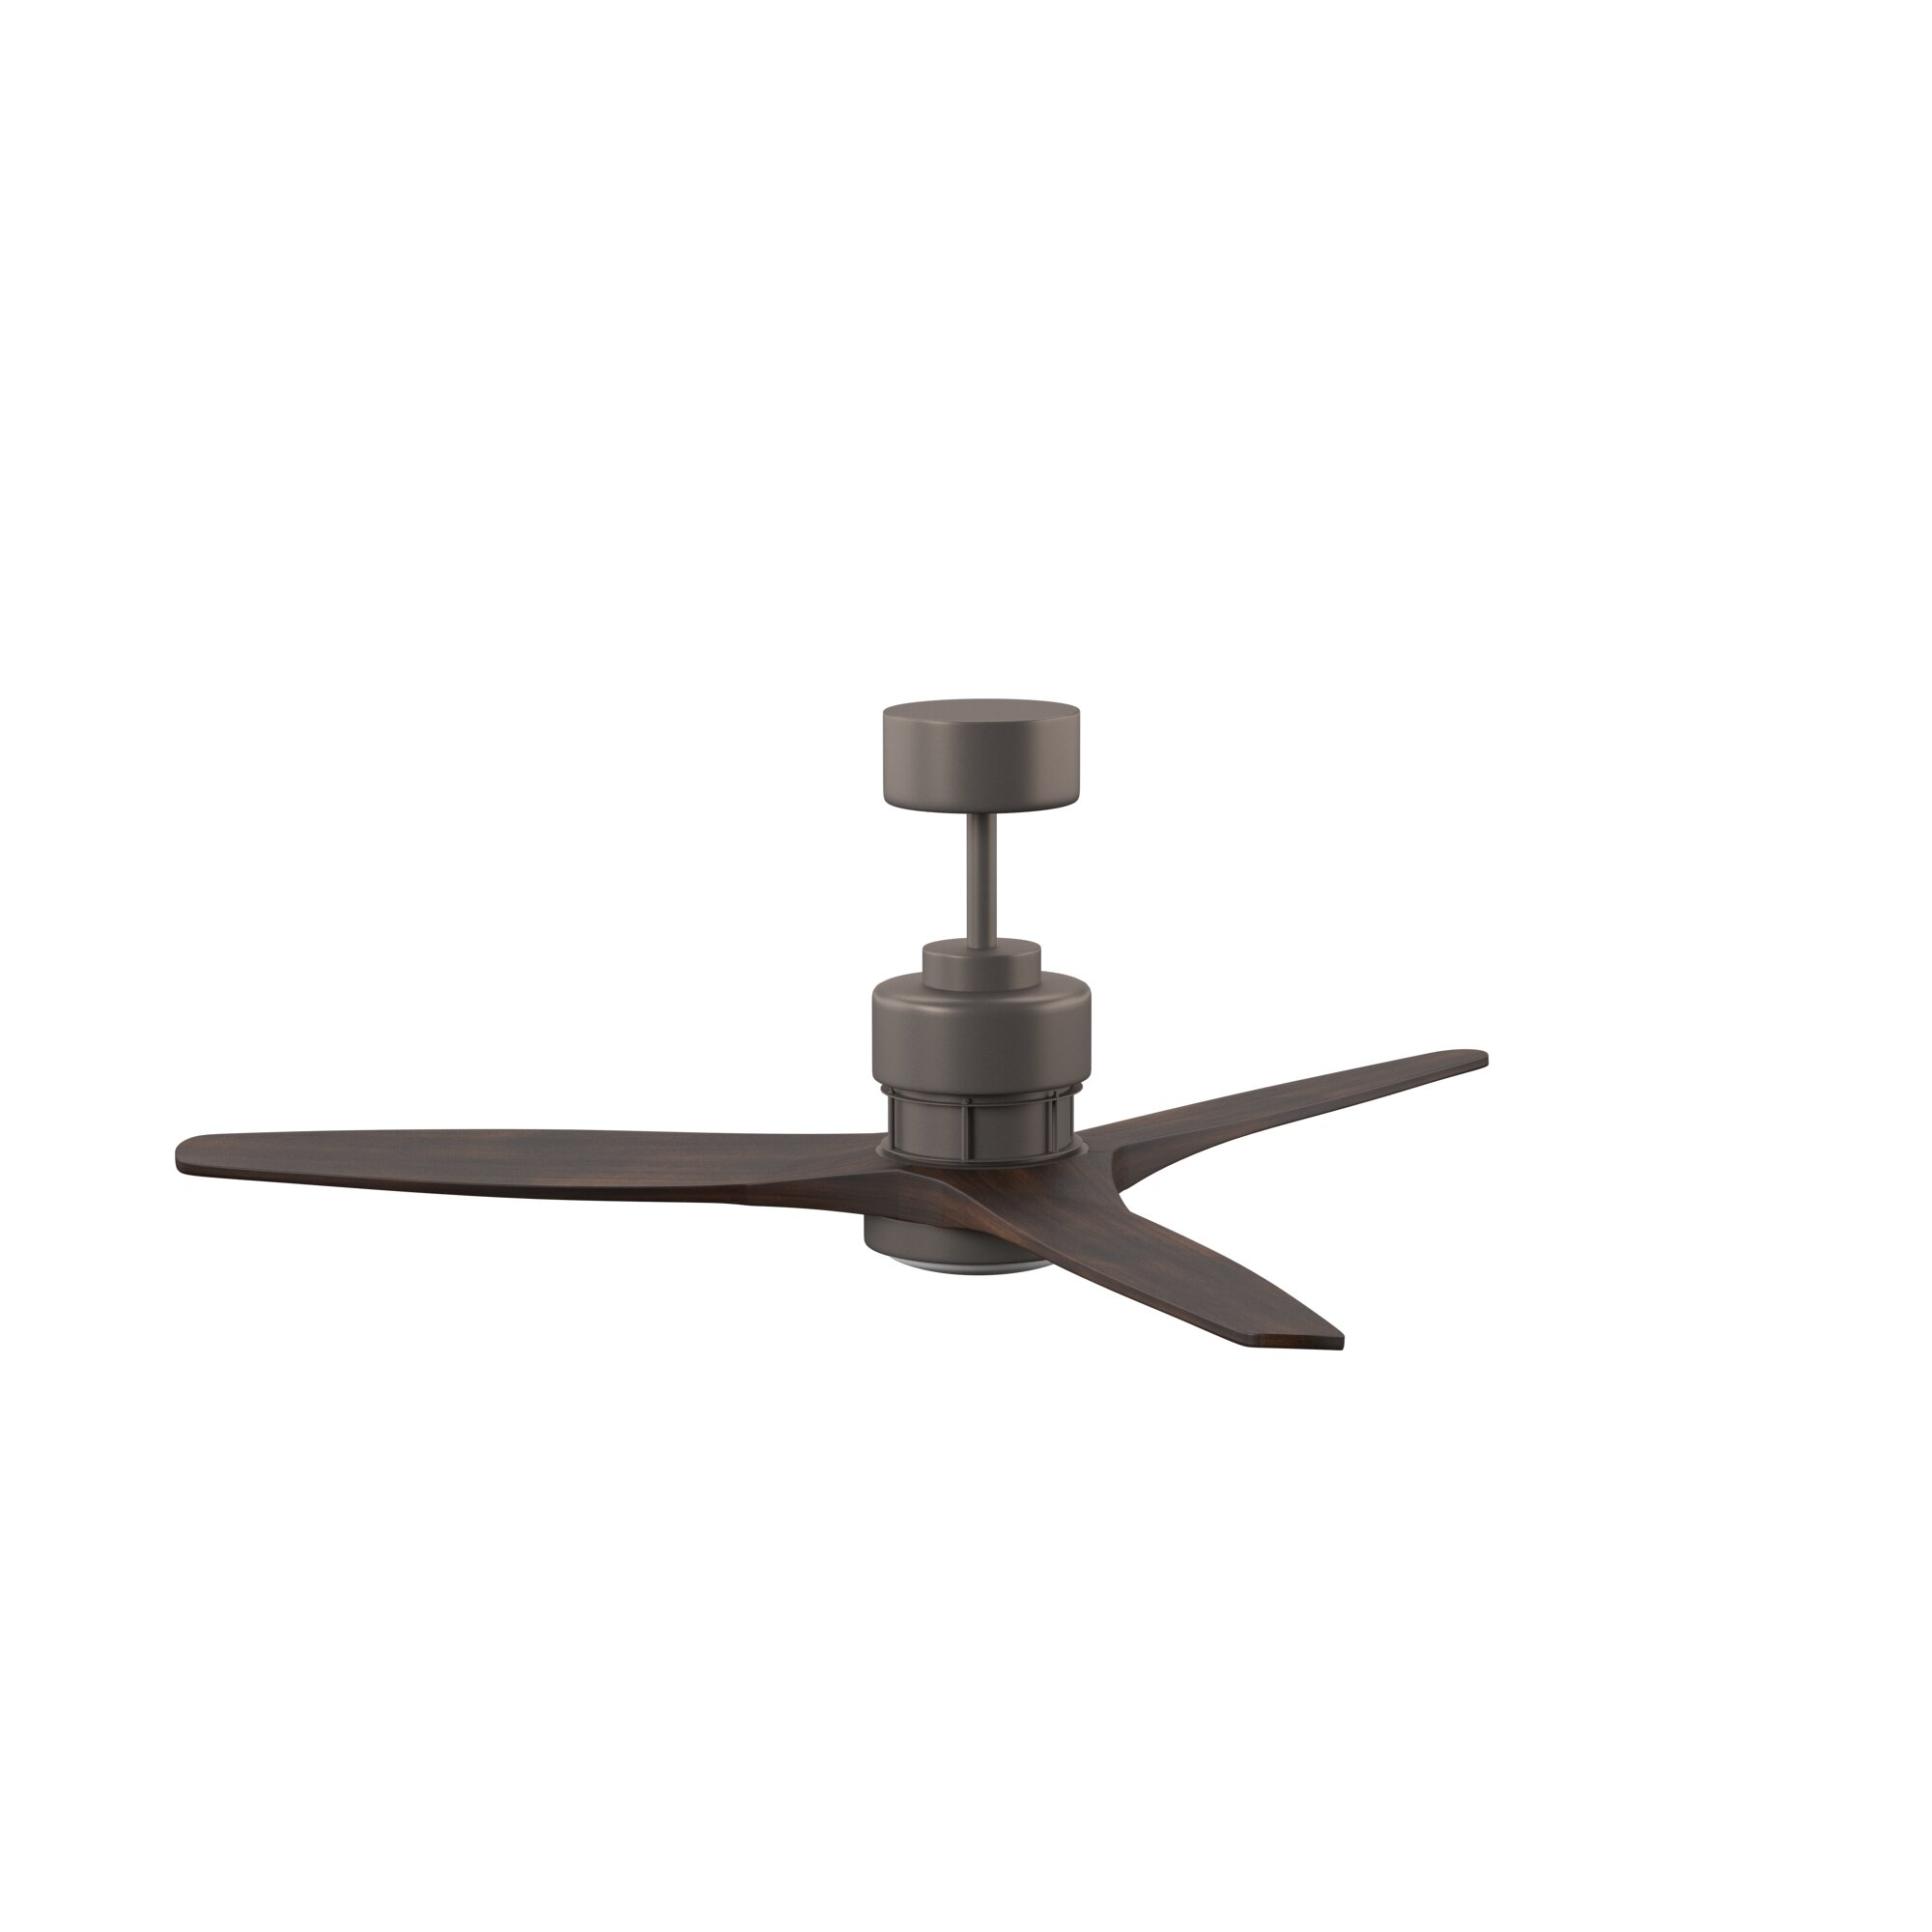 52 Mcdaniels 3 Blade Led Ceiling Fan With Remote Light Kit Included Reviews Allmodern